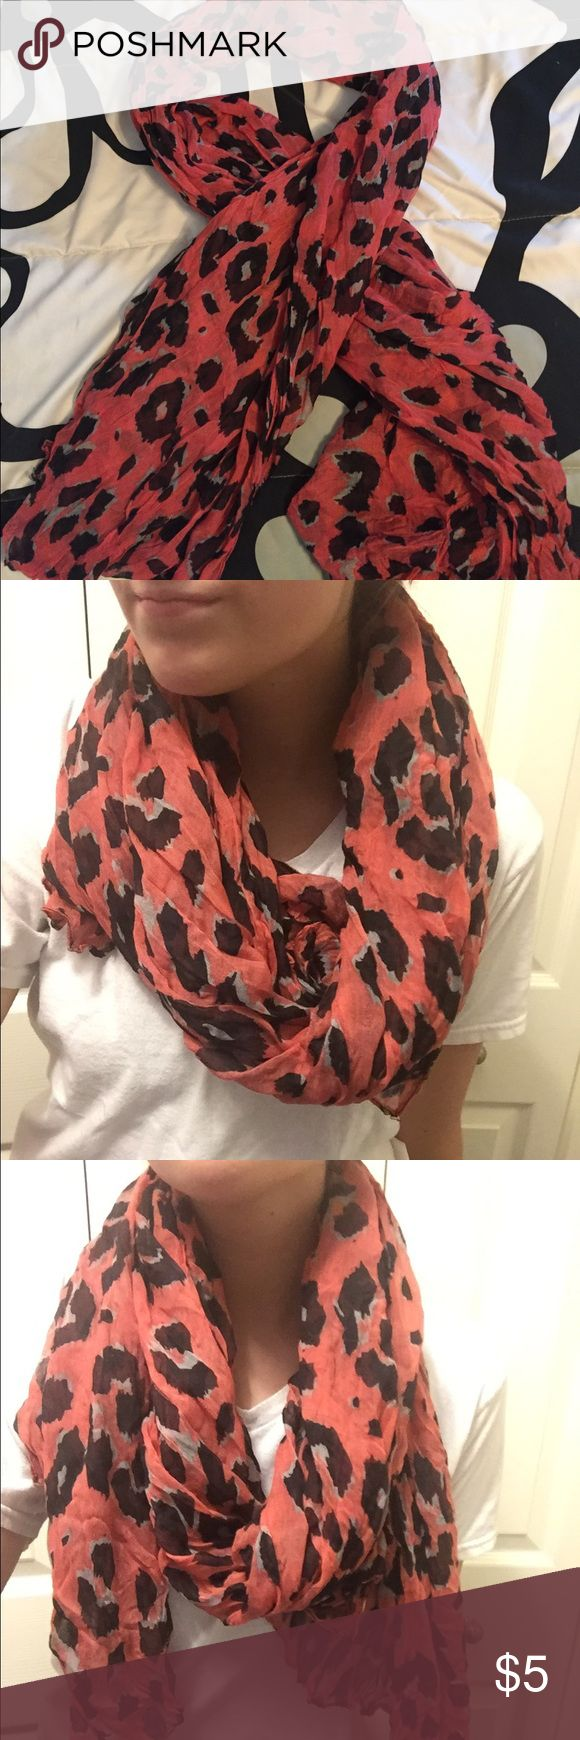 Pink cheetah scarf! Super soft material, lightweight, not too hot, pink cheetah pattern. (Color better shown in picture of scarf laid down) Accessories Scarves & Wraps